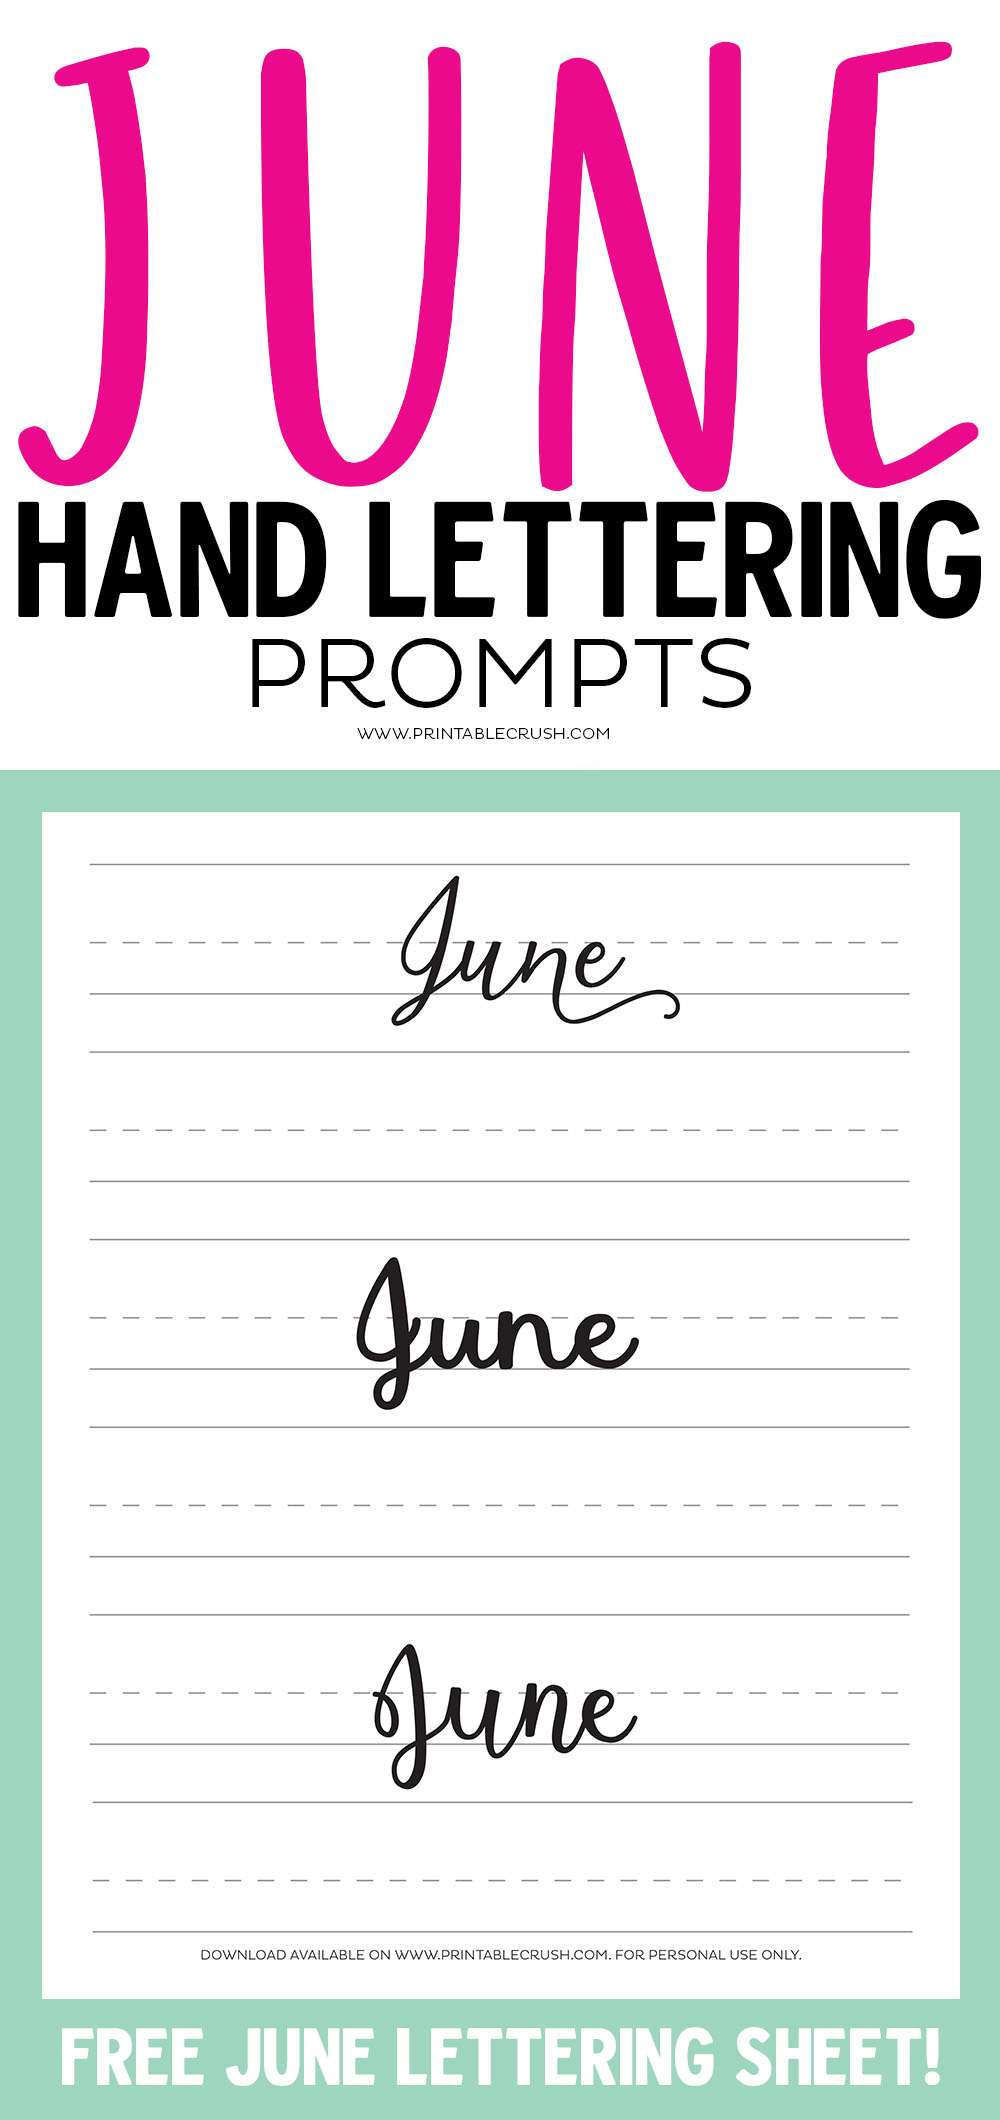 Get a free hand lettering worksheet with June's Hand Lettering Prompts.